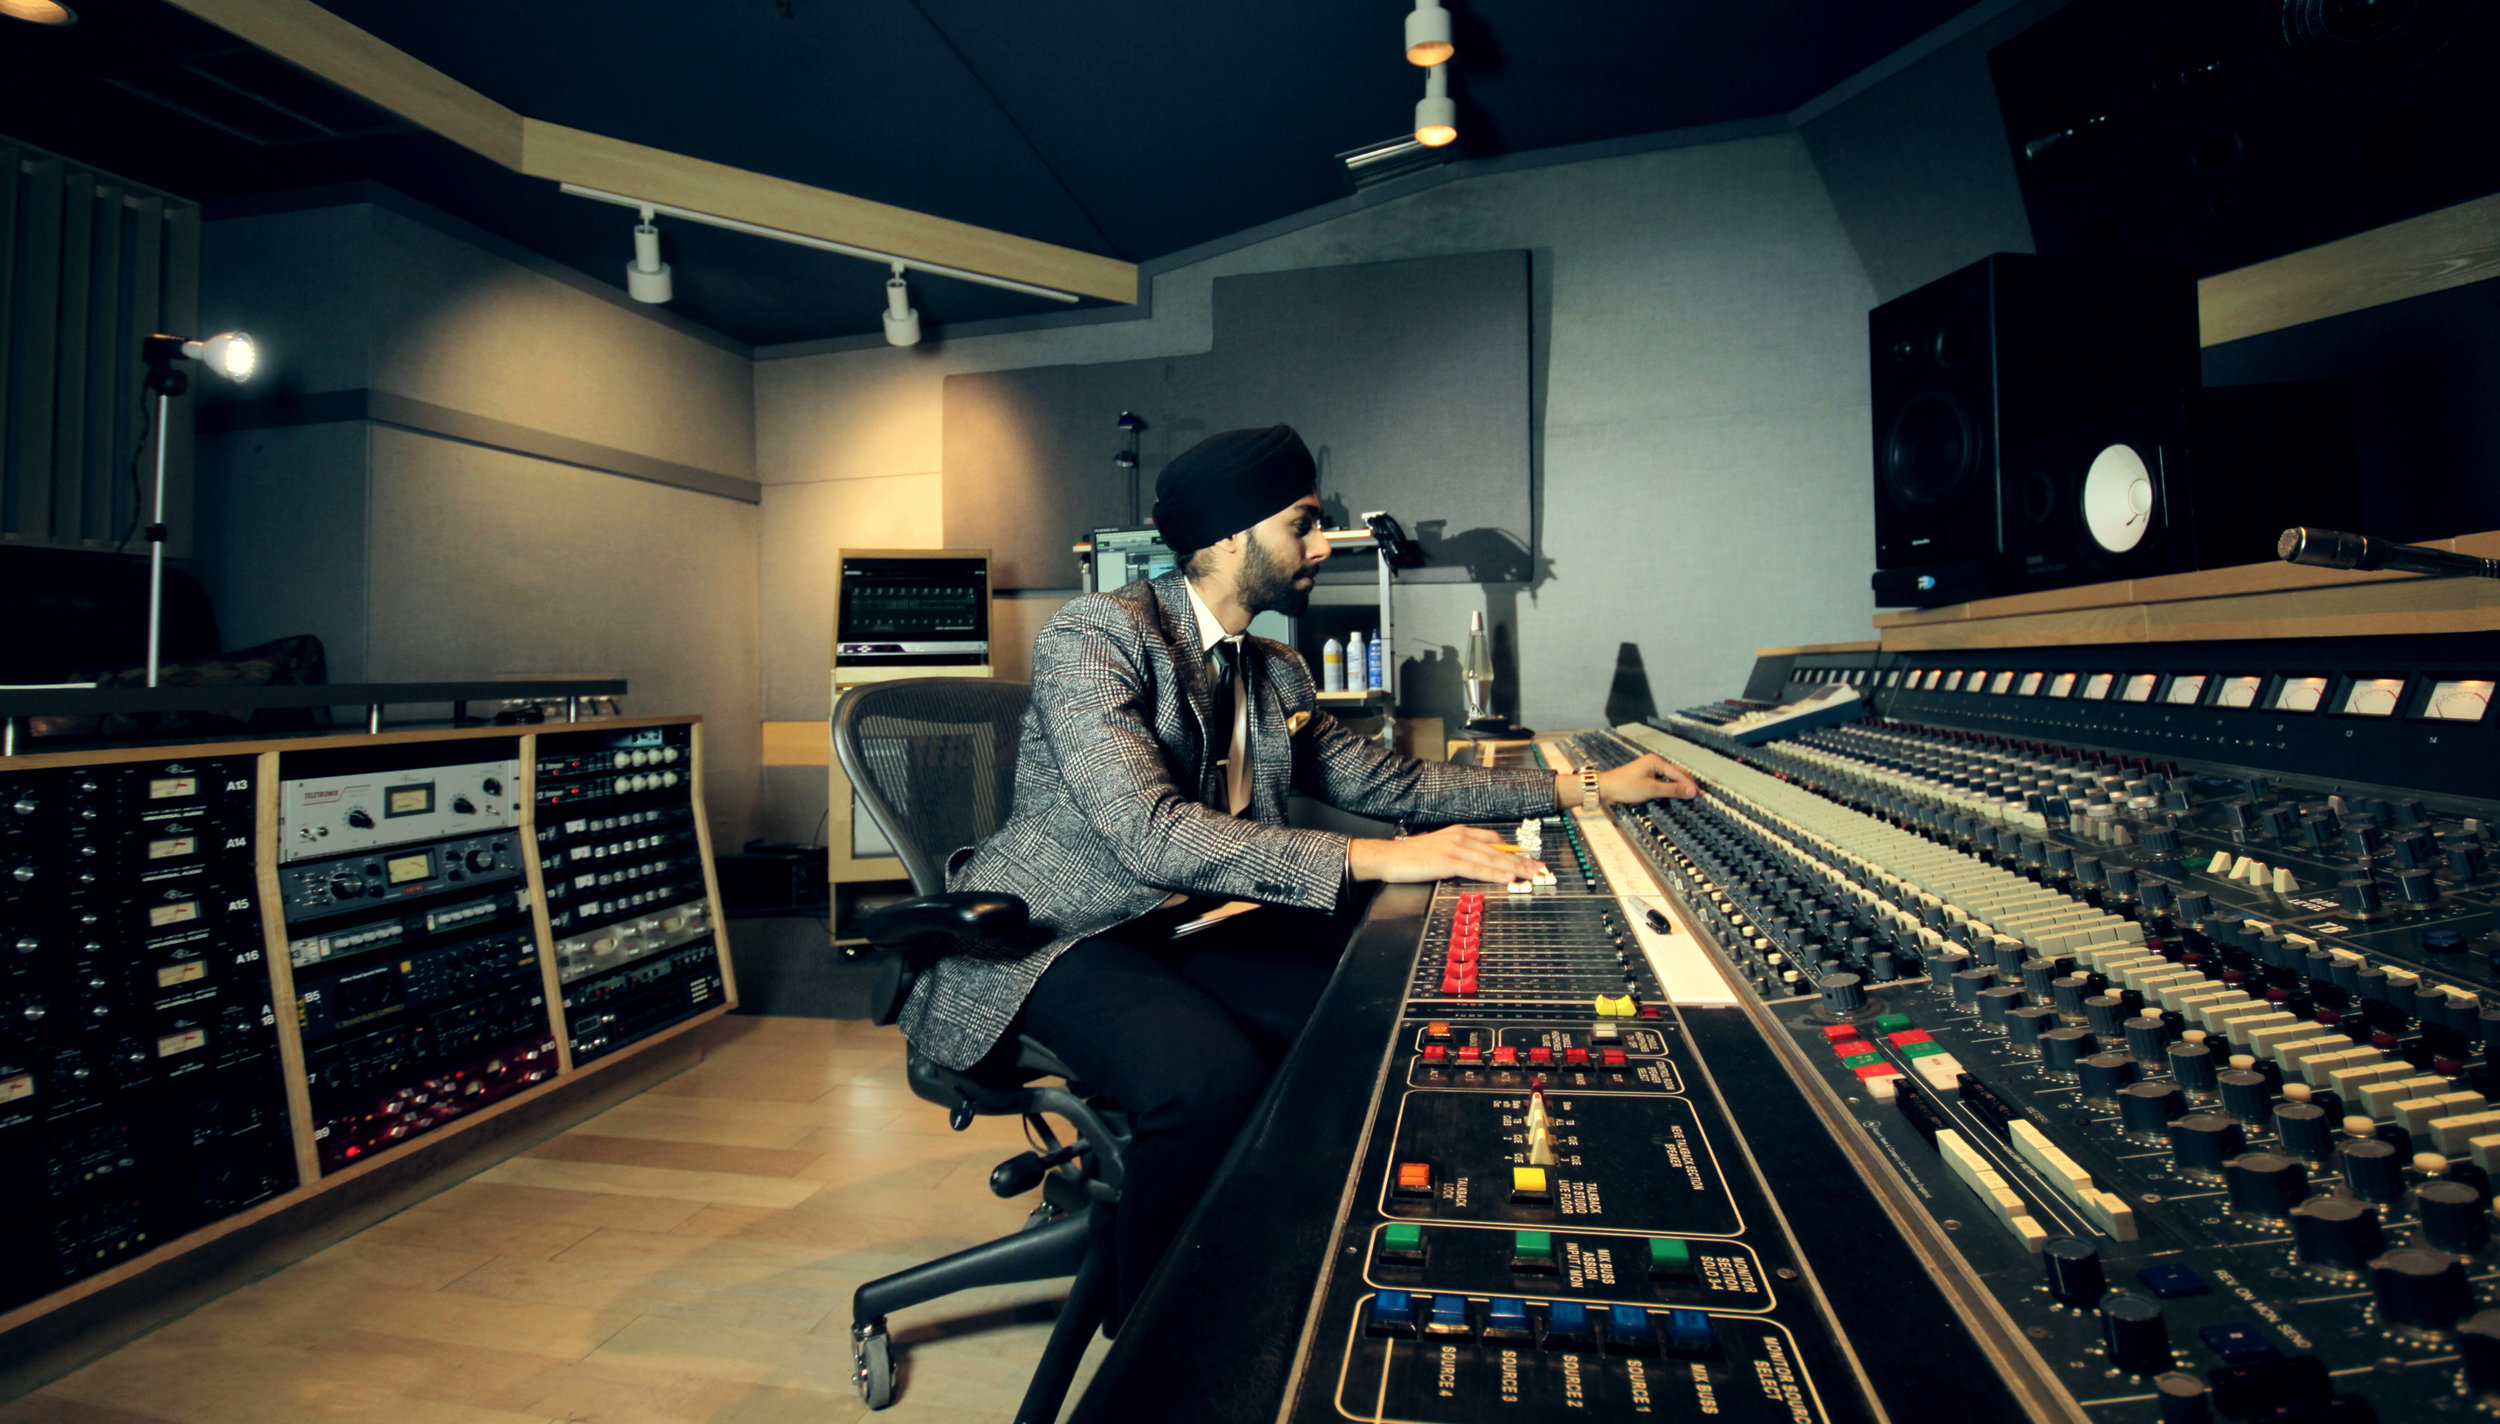 Gagan Singh Mixing Wallpaper EDITED.jpg